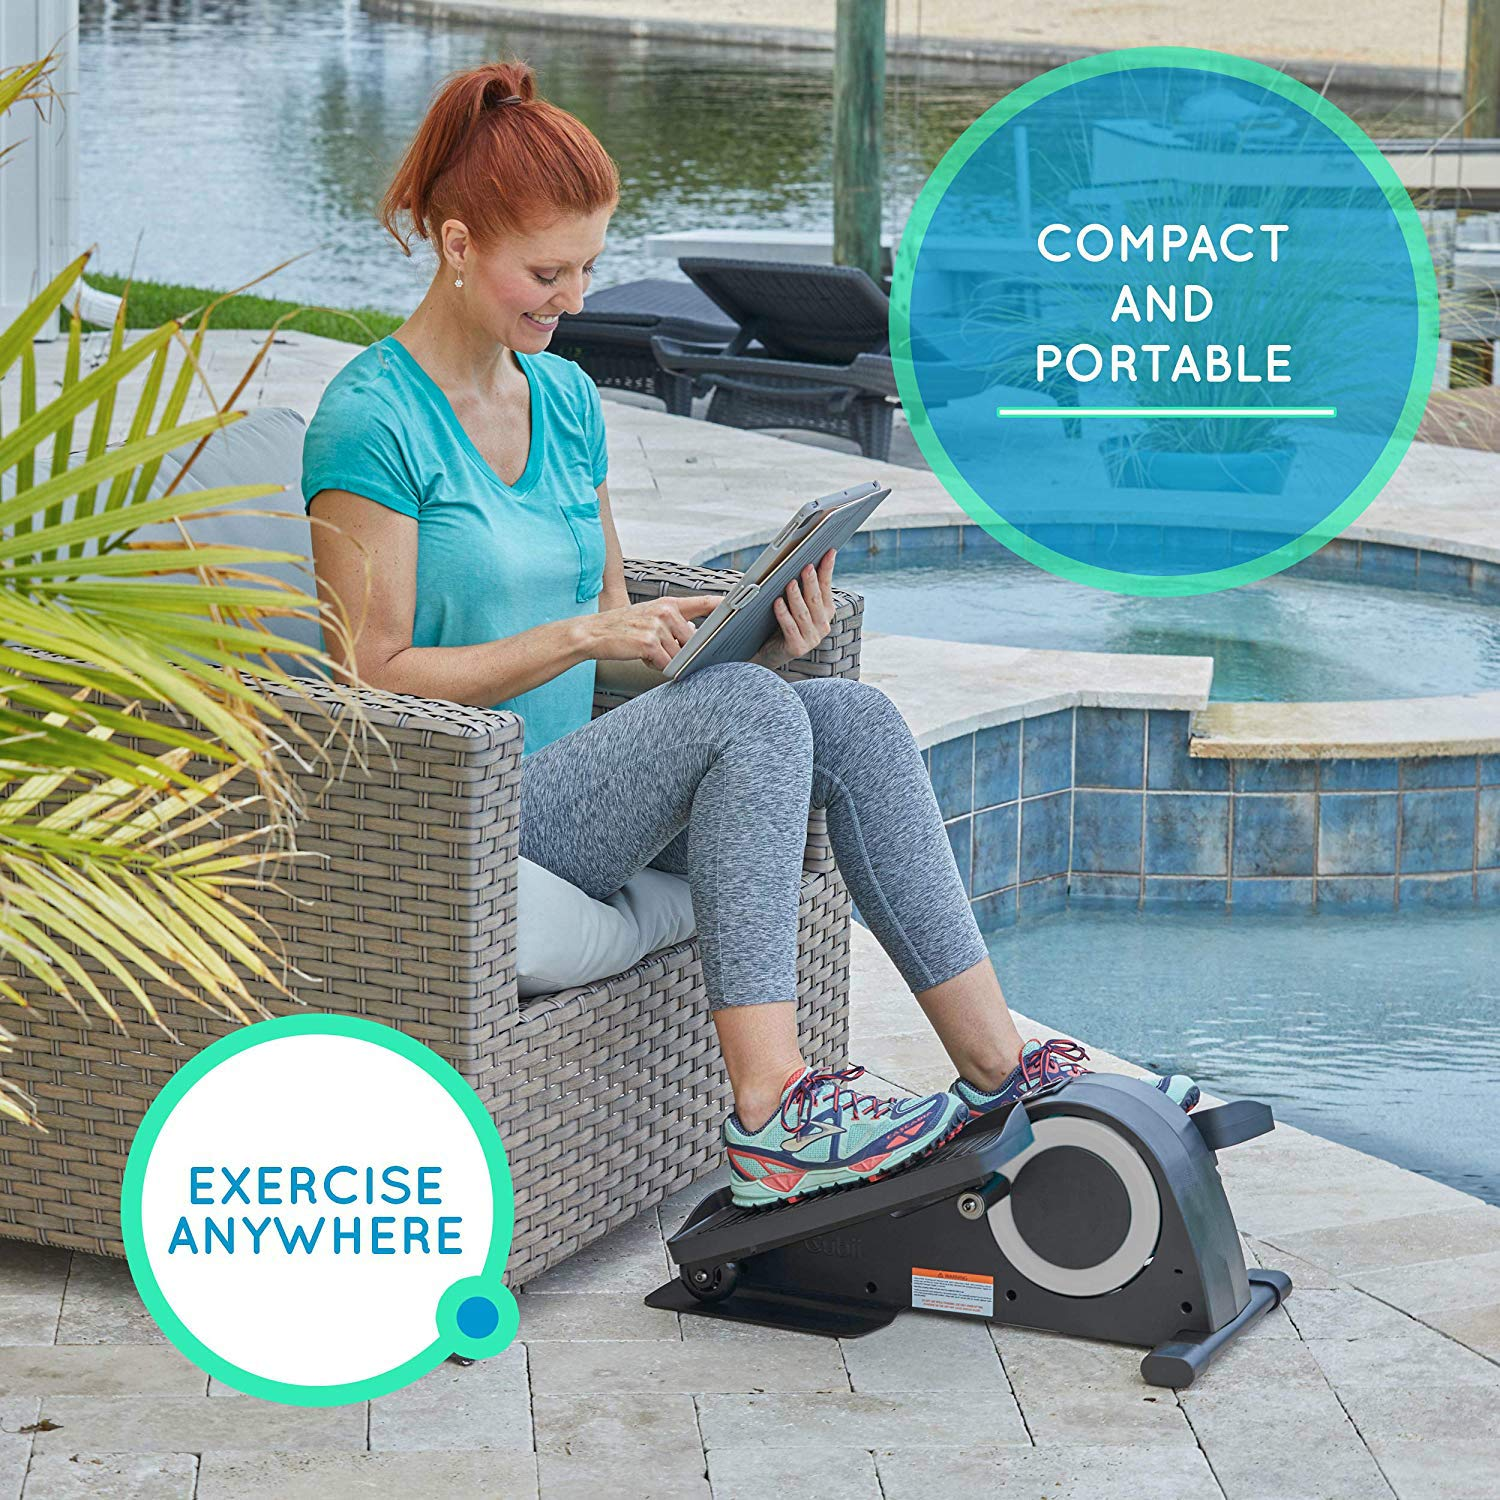 ANCE Under Desk&Stand Up Exercise Bike, Desk Elliptical with Built in Display Monitor, Quiet & Compact, Electric Elliptical Machine Trainer